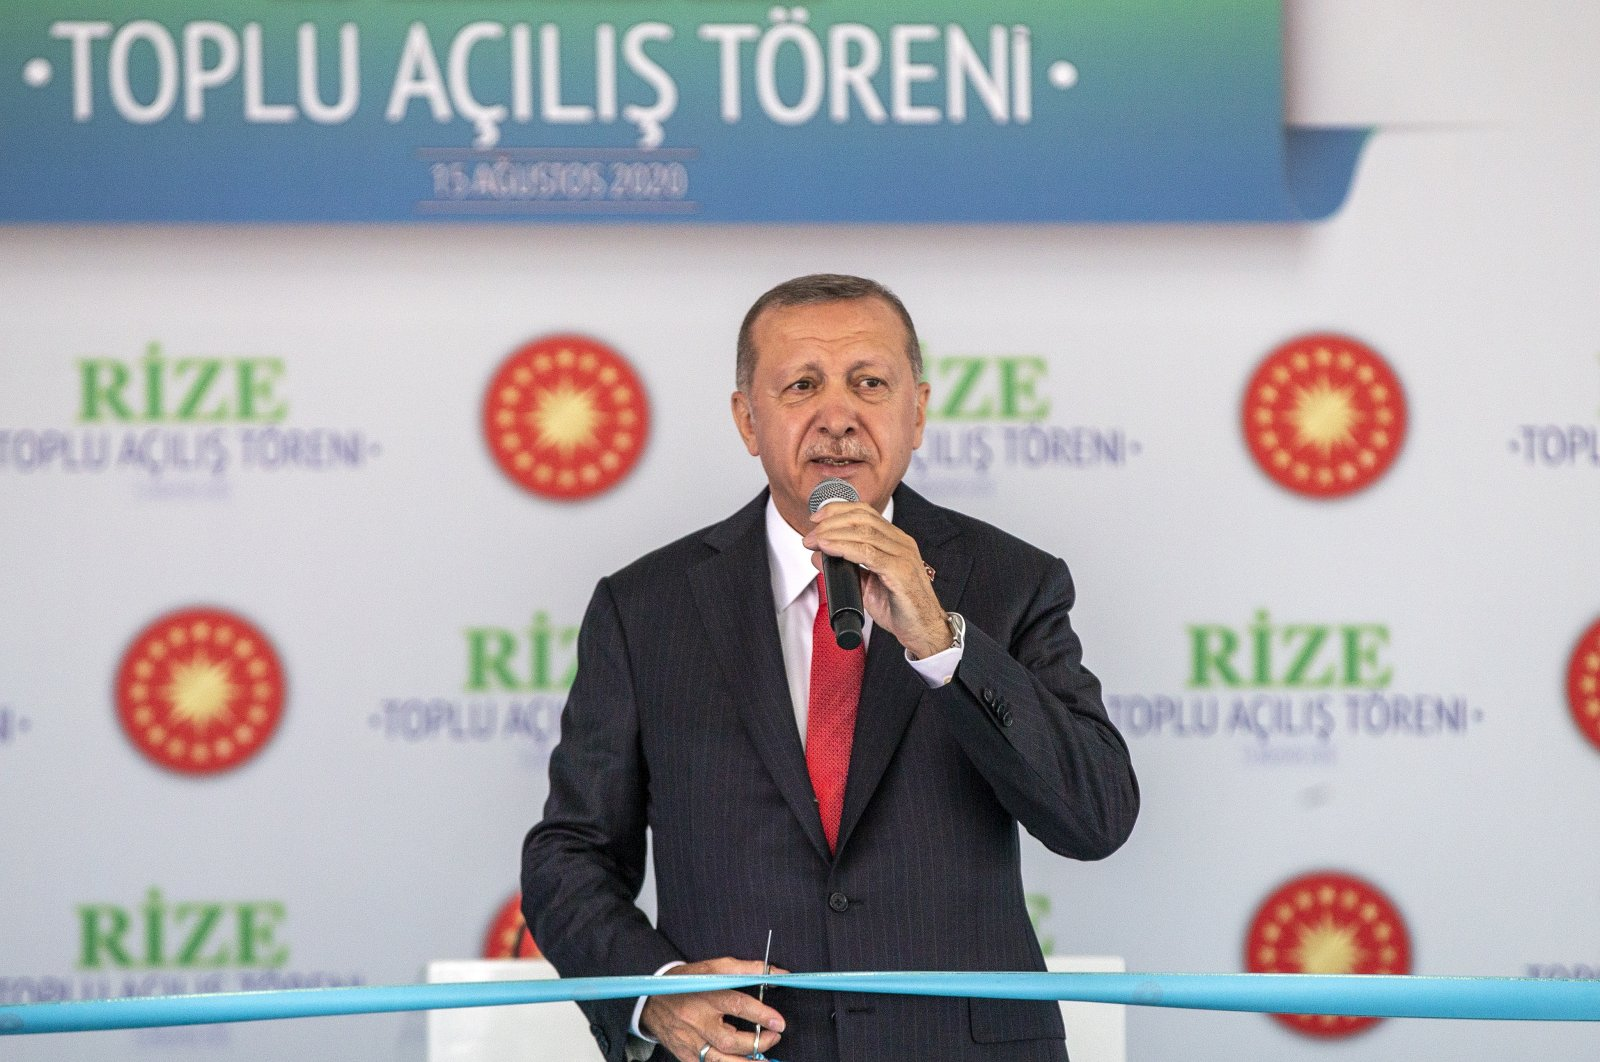 President Recep Tayyip Erdoğan speaks at an opening ceremony in the northeastern Black Sea province Rize on Aug. 15, 2020. (AA Photo)